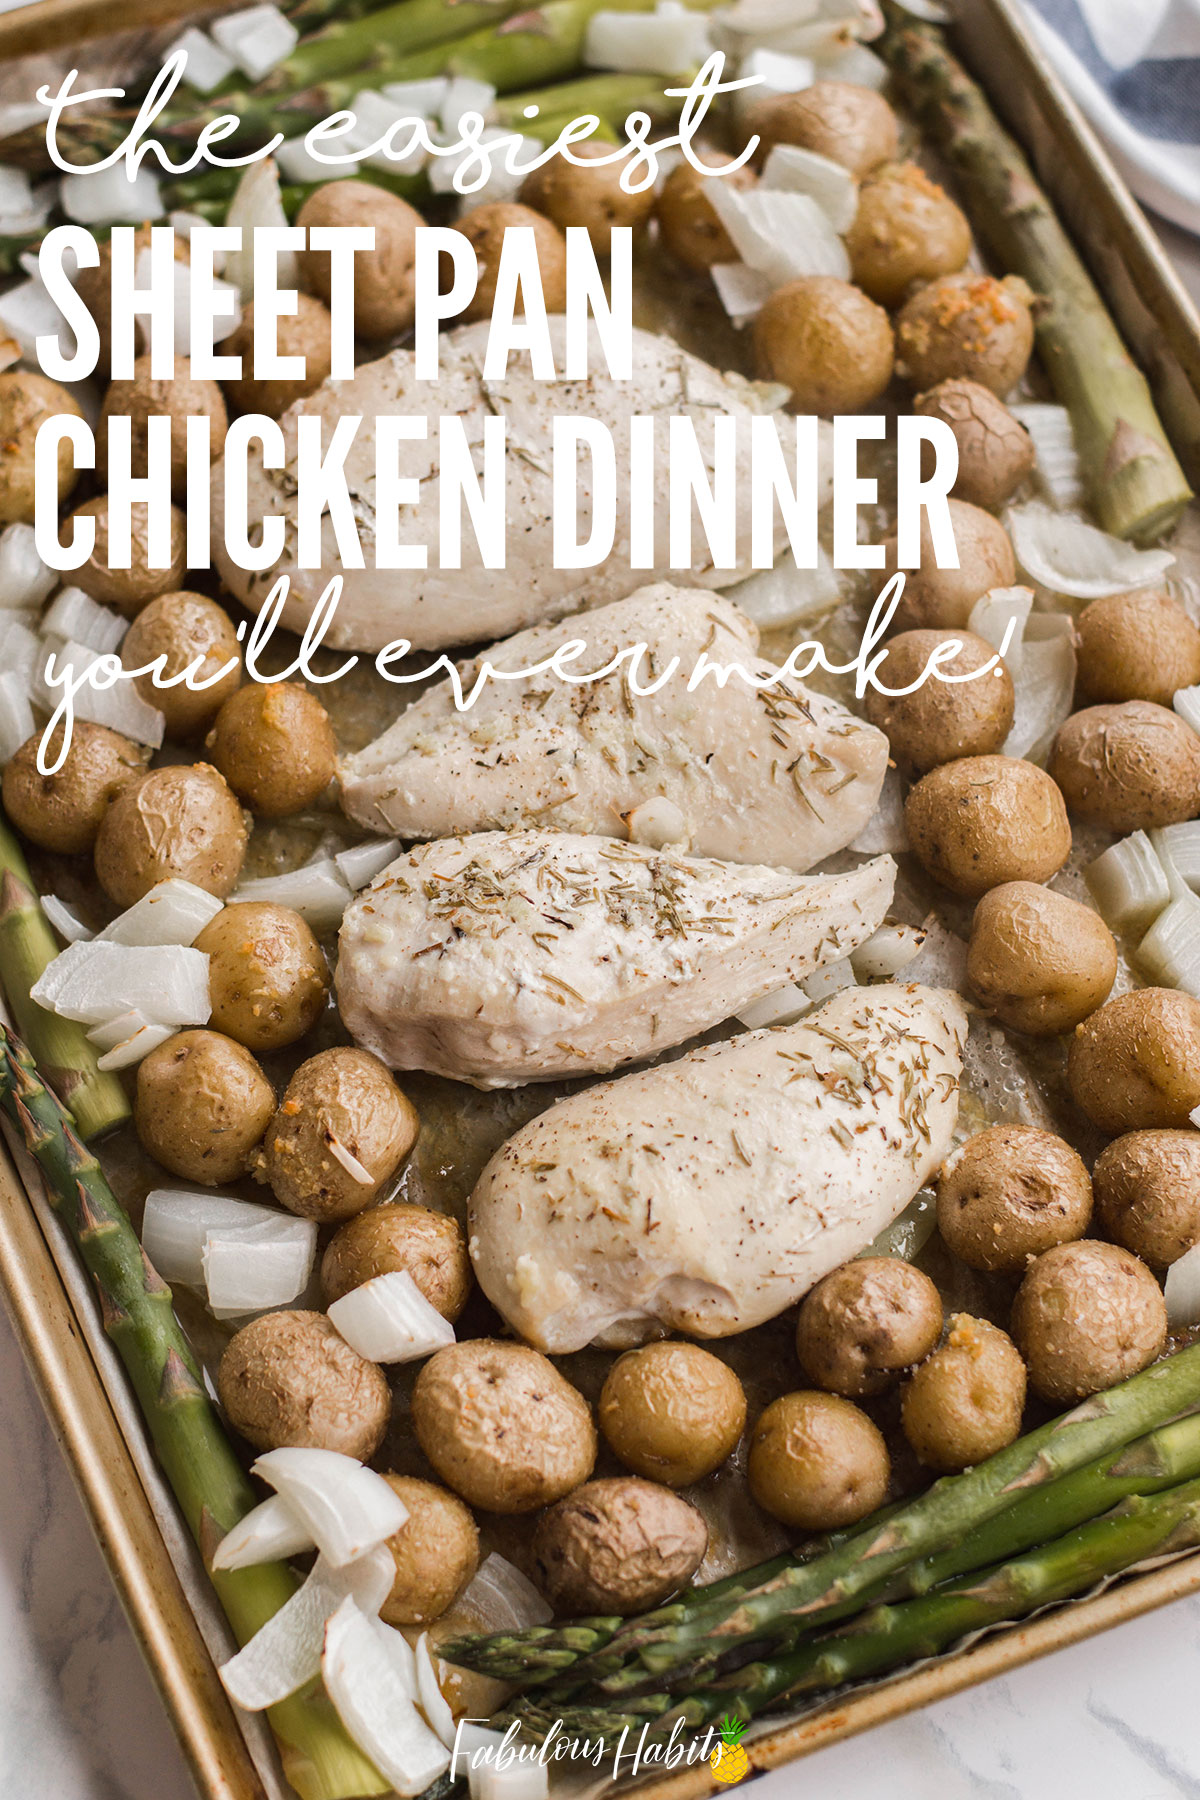 Folks, this is the easiest sheet pan dinner you'll ever make. Filled with delicious chicken and potatoes - and a butter garlic sauce that's out of this world! #easyweeknightdinners